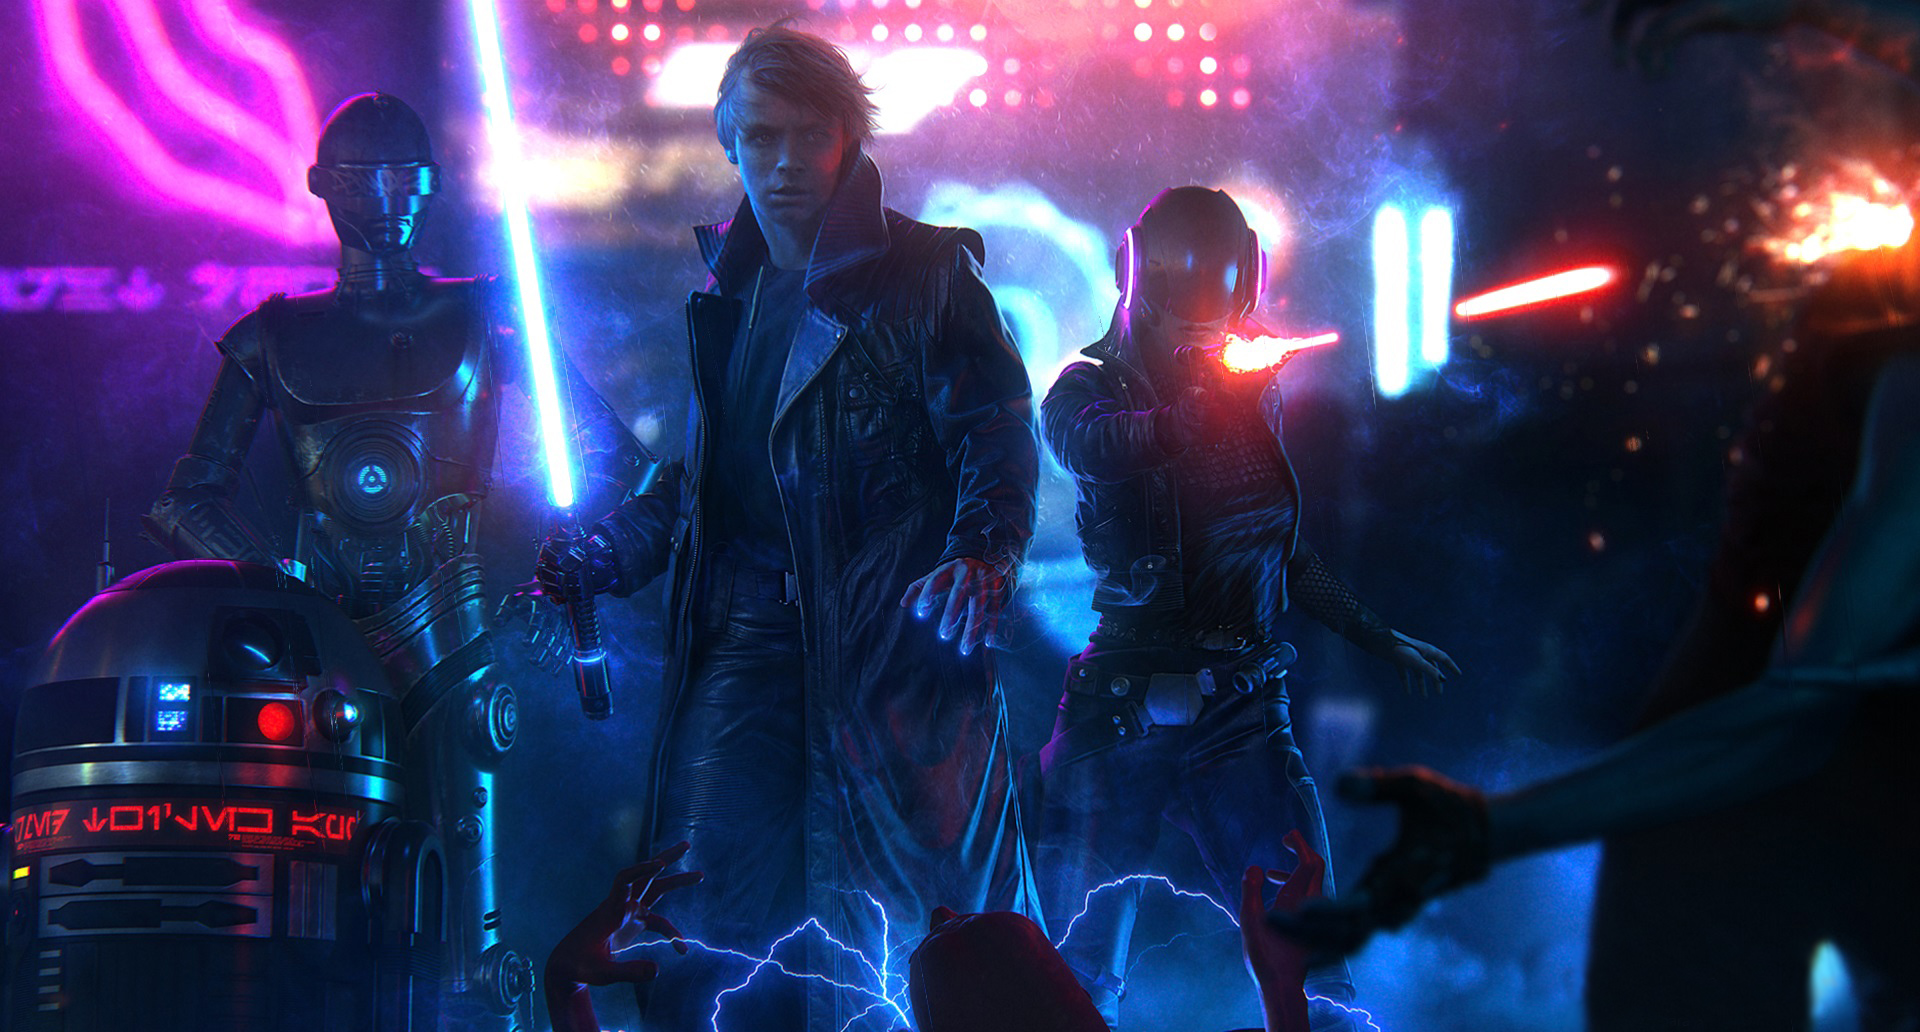 Star Wars Blade Runner Luke Skywalker Animated Wallpaper